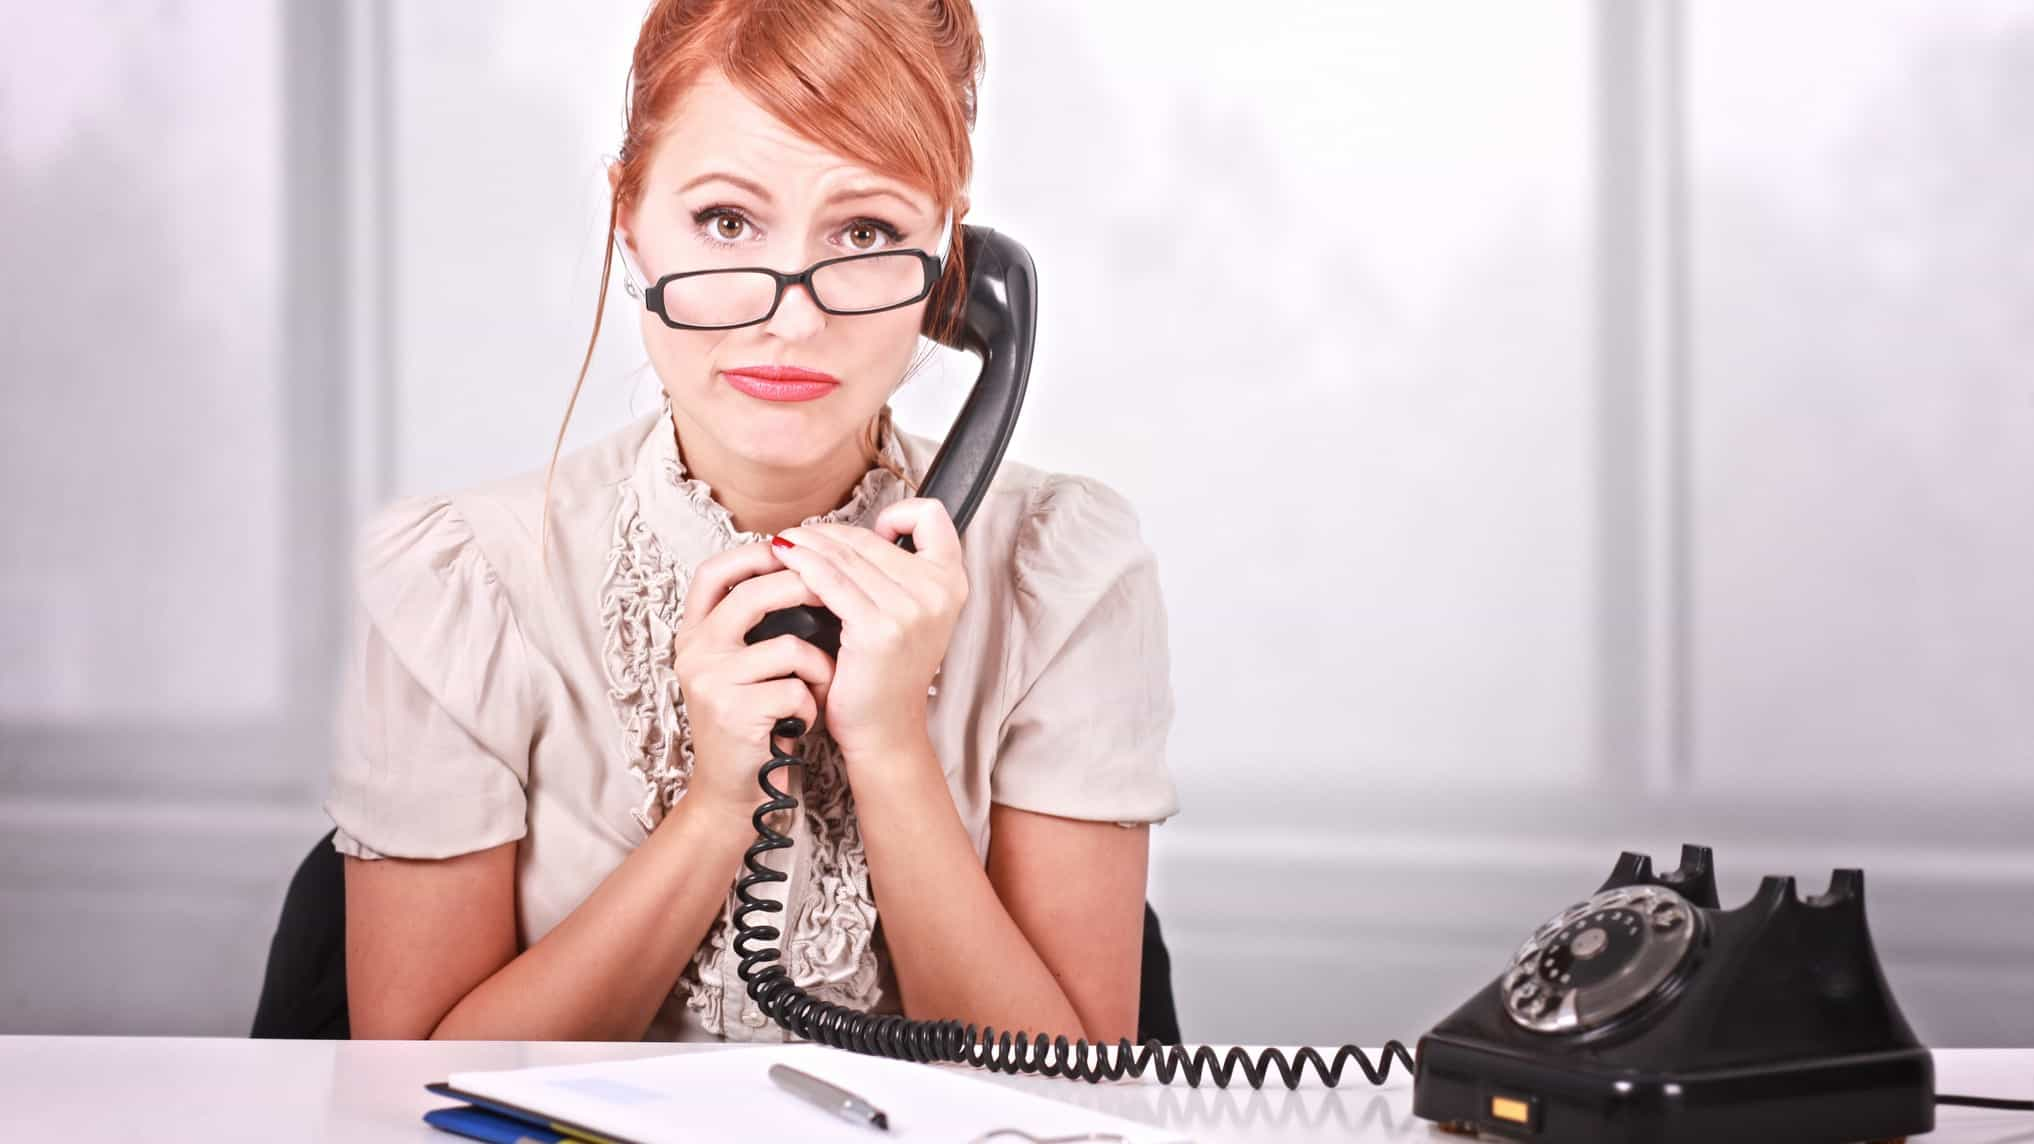 a woman holds an old fashioned telephone ear piece to her ear while looking unhappy sitting at a desk with her glasses crooked on her nose and a deflated expression on her face.